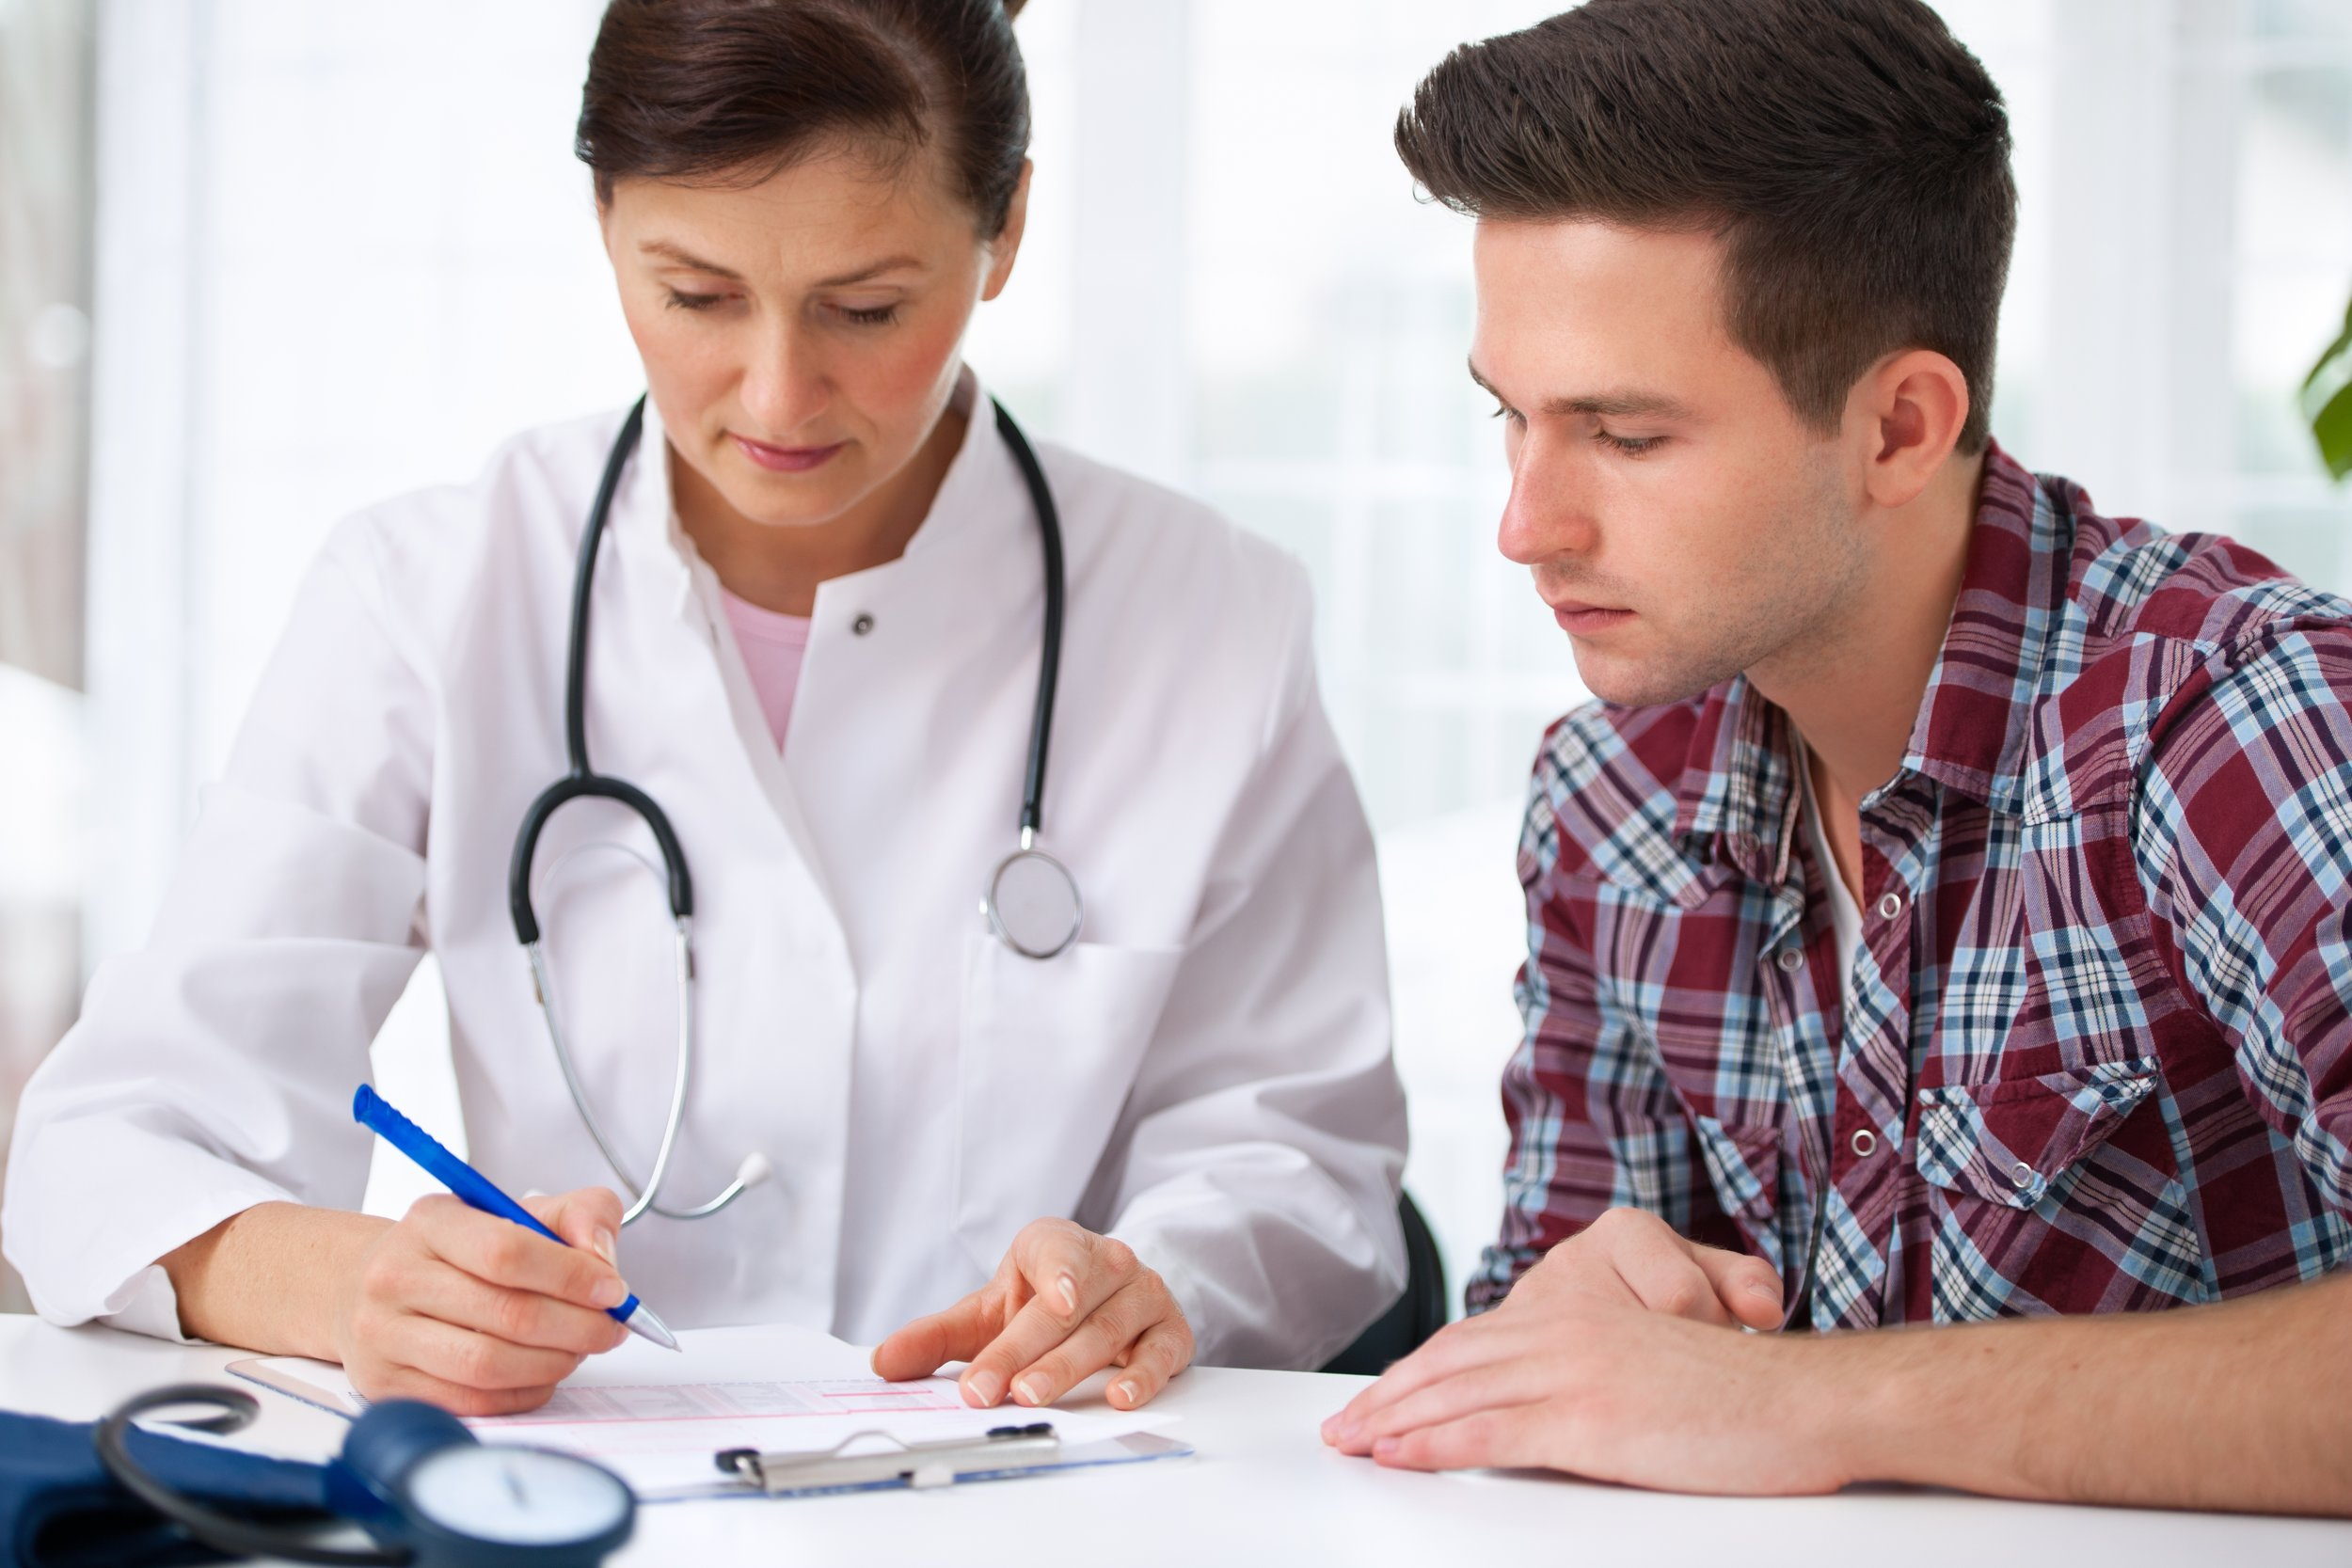 Medical doctor going over insurance and medical bills with male patient